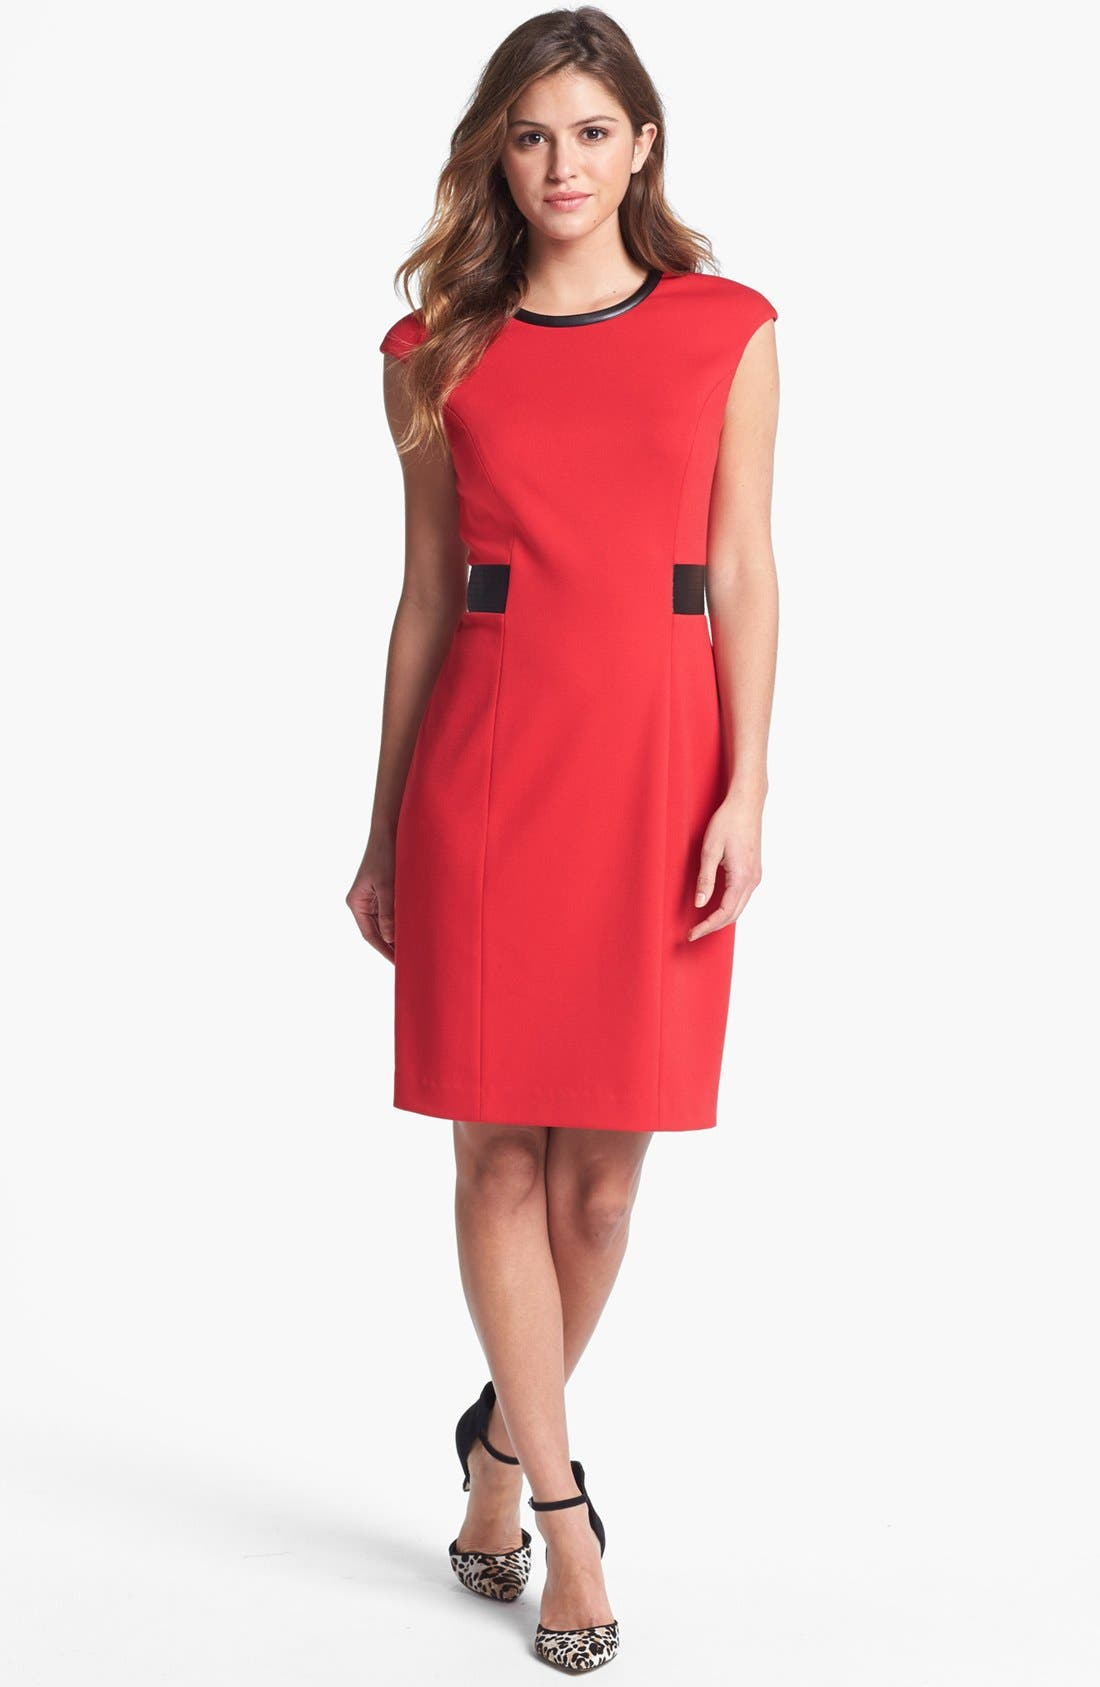 Alternate Image 1 Selected - Calvin Klein Faux Leather Trim Ponte Sheath Dress